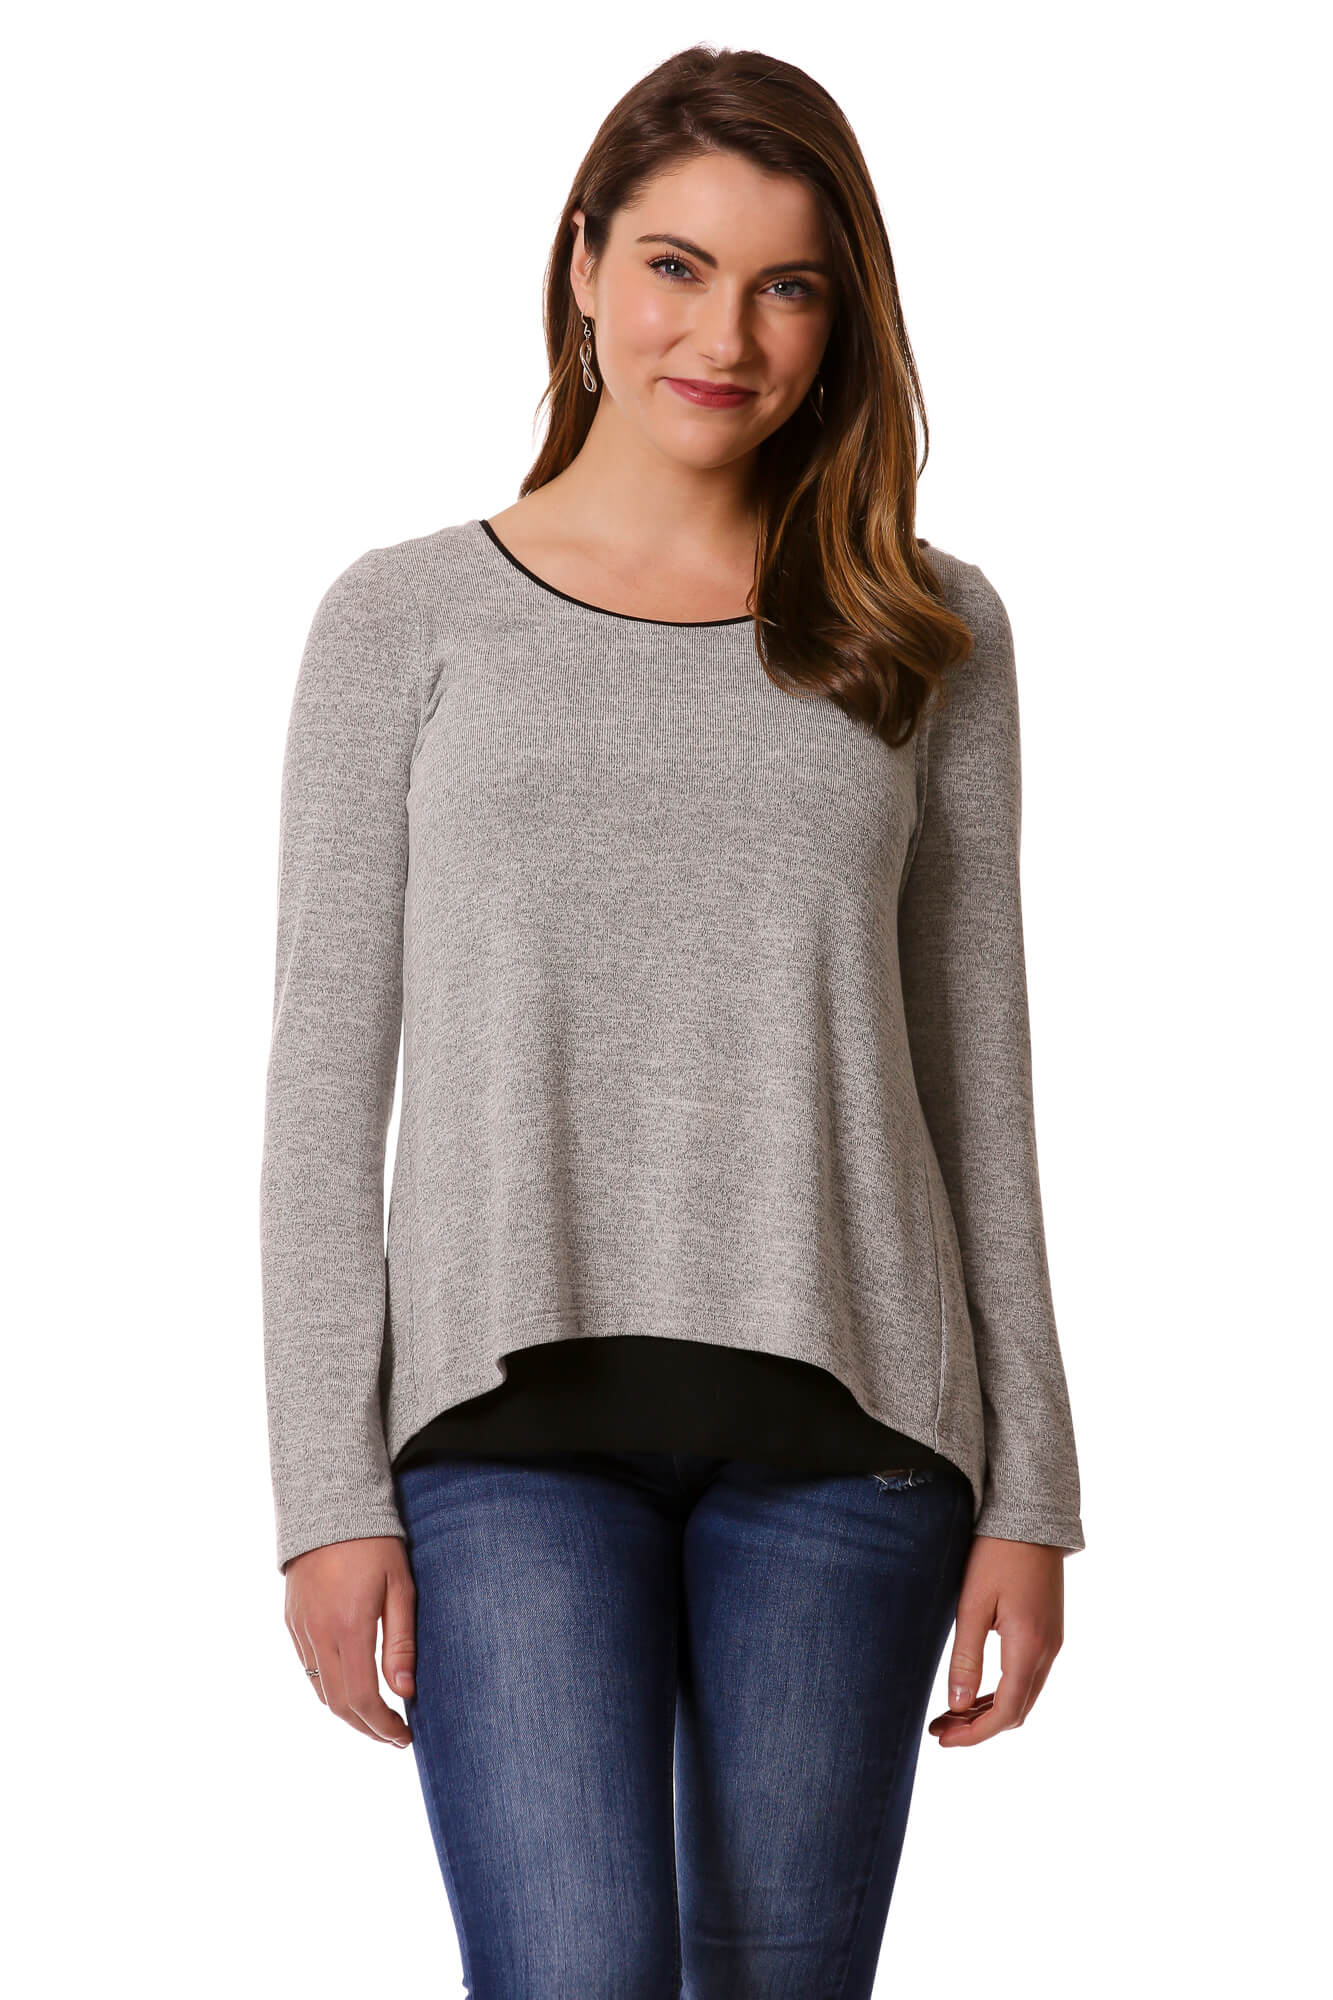 Women's Grey Open Back Layered Top | Cozy top for Fall/Winter | Neesha Fashion